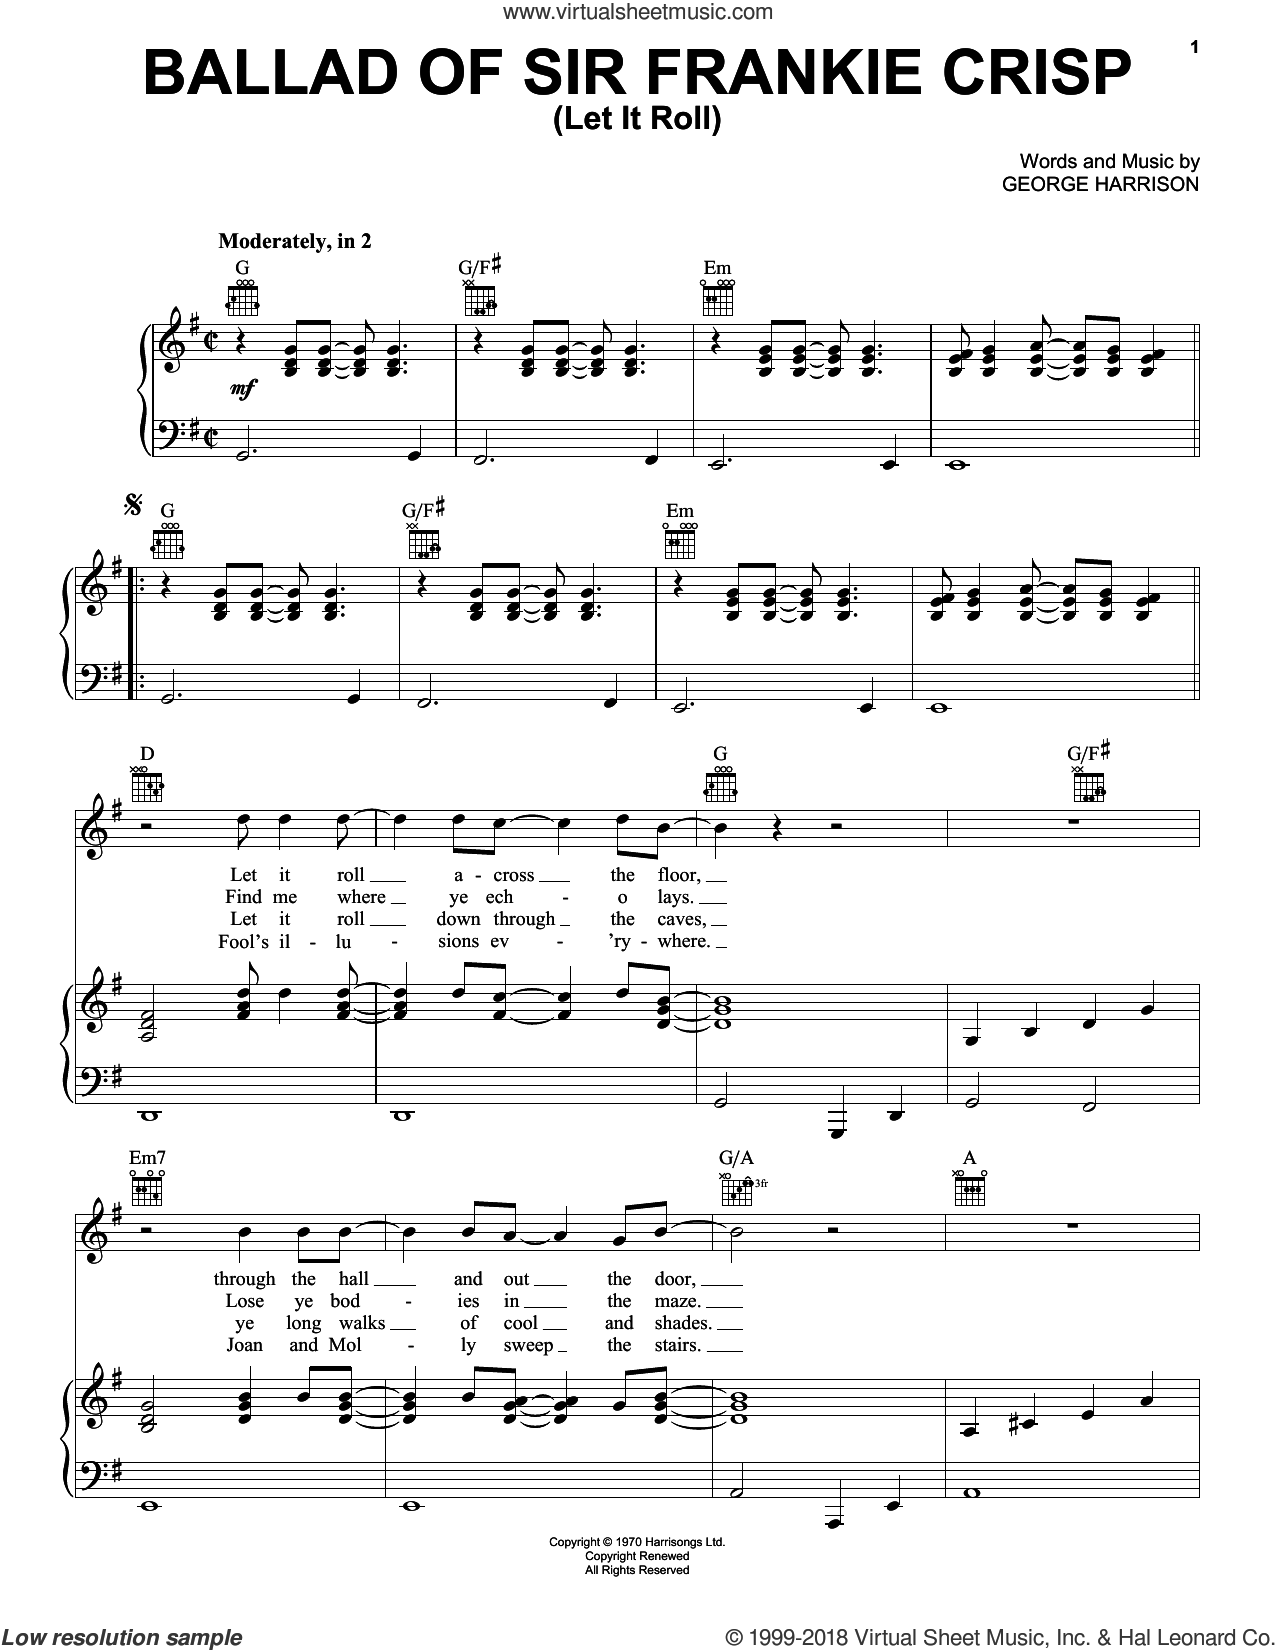 Ballad Of Sir Frankie Crisp (Let It Roll) sheet music for voice, piano or guitar by George Harrison. Score Image Preview.